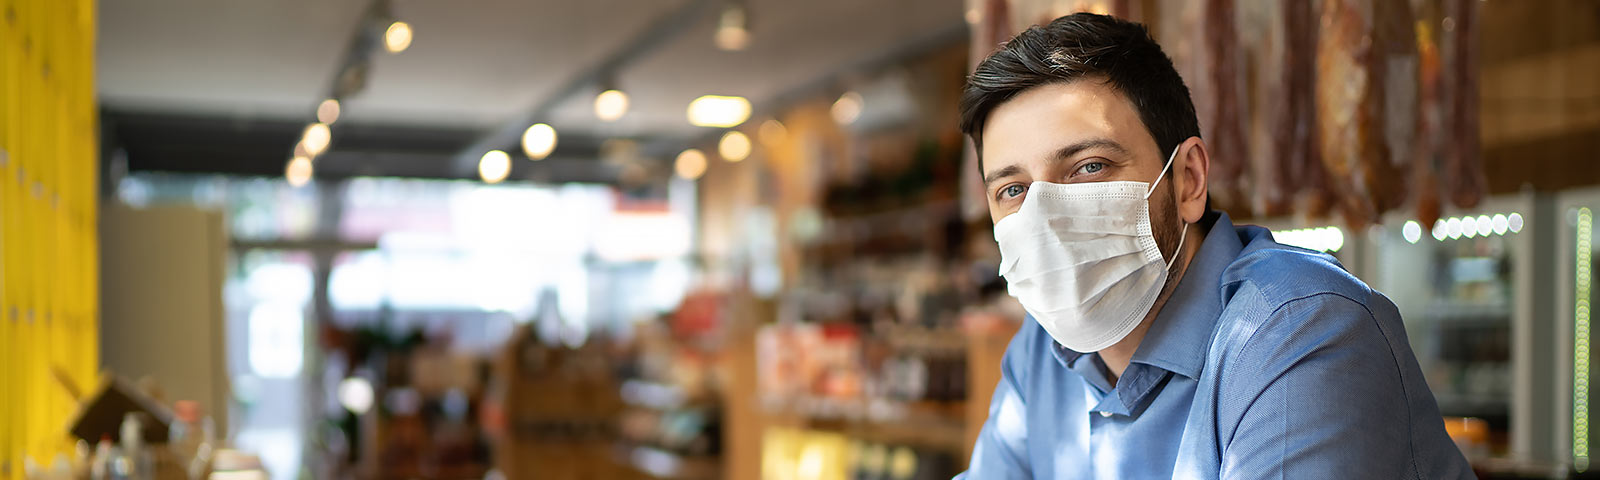 Business owner wearing protective mask to prevent the spread of COVID-19